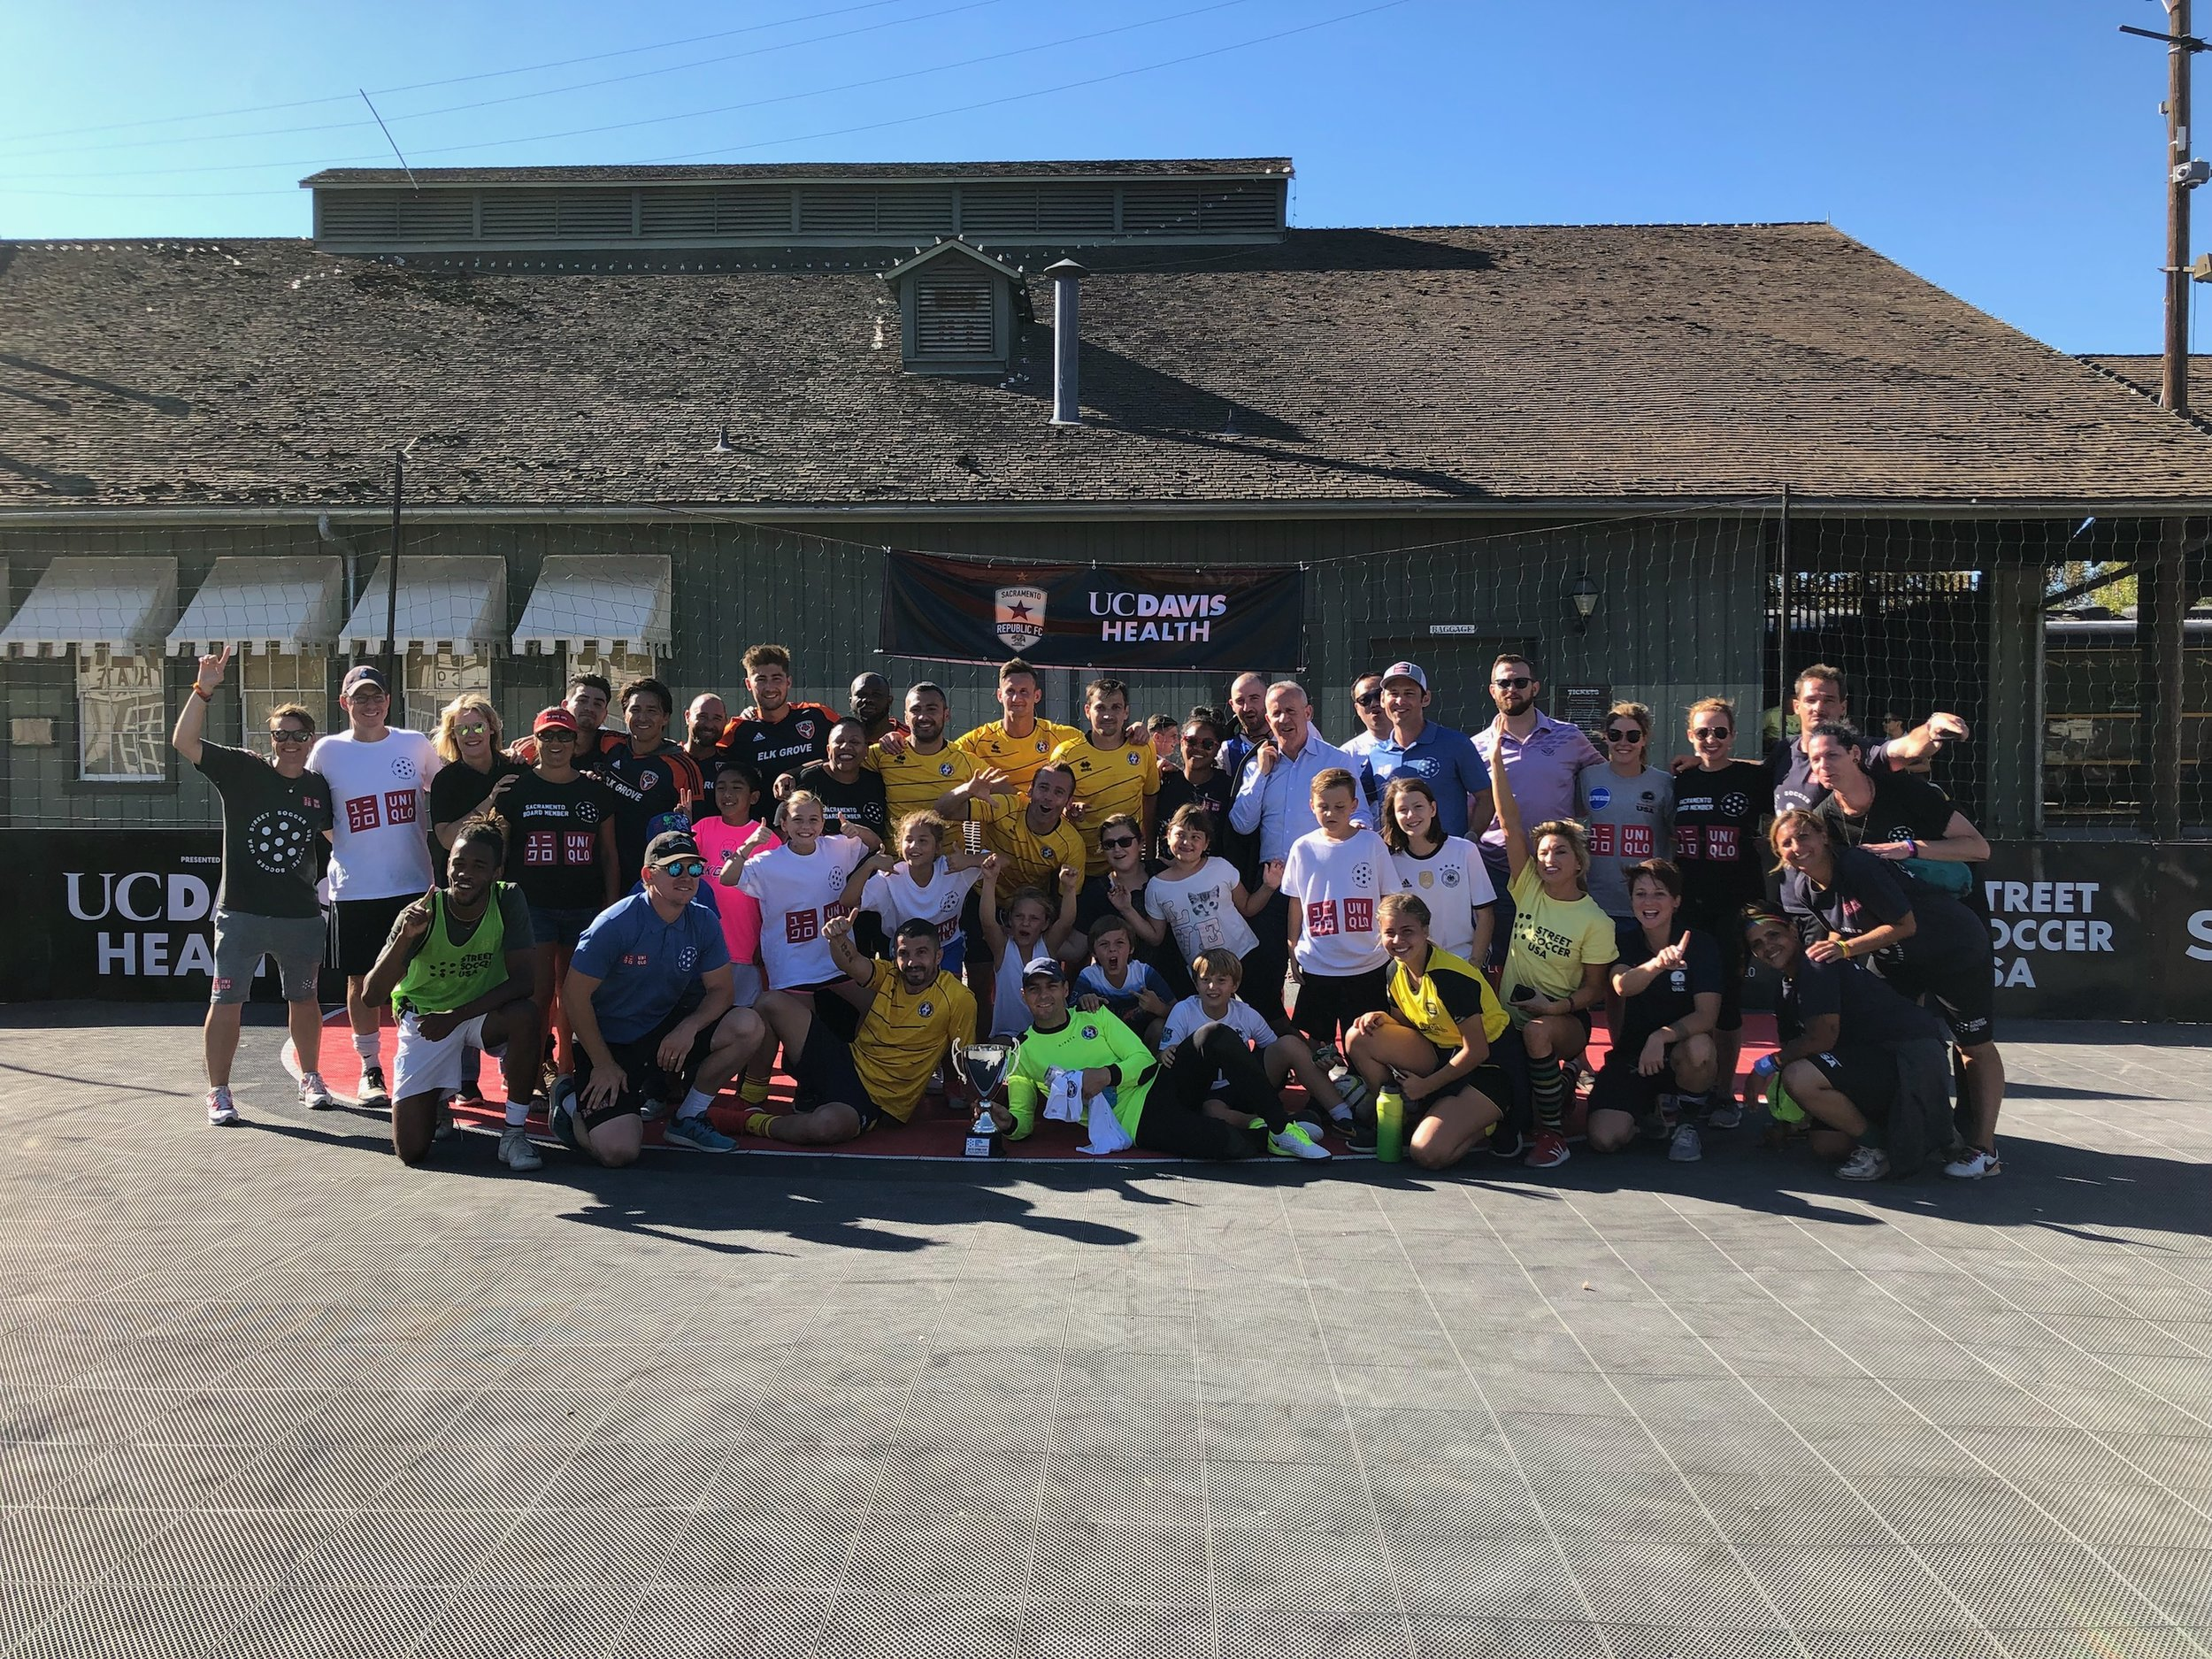 Sacramento Homeless World Cup